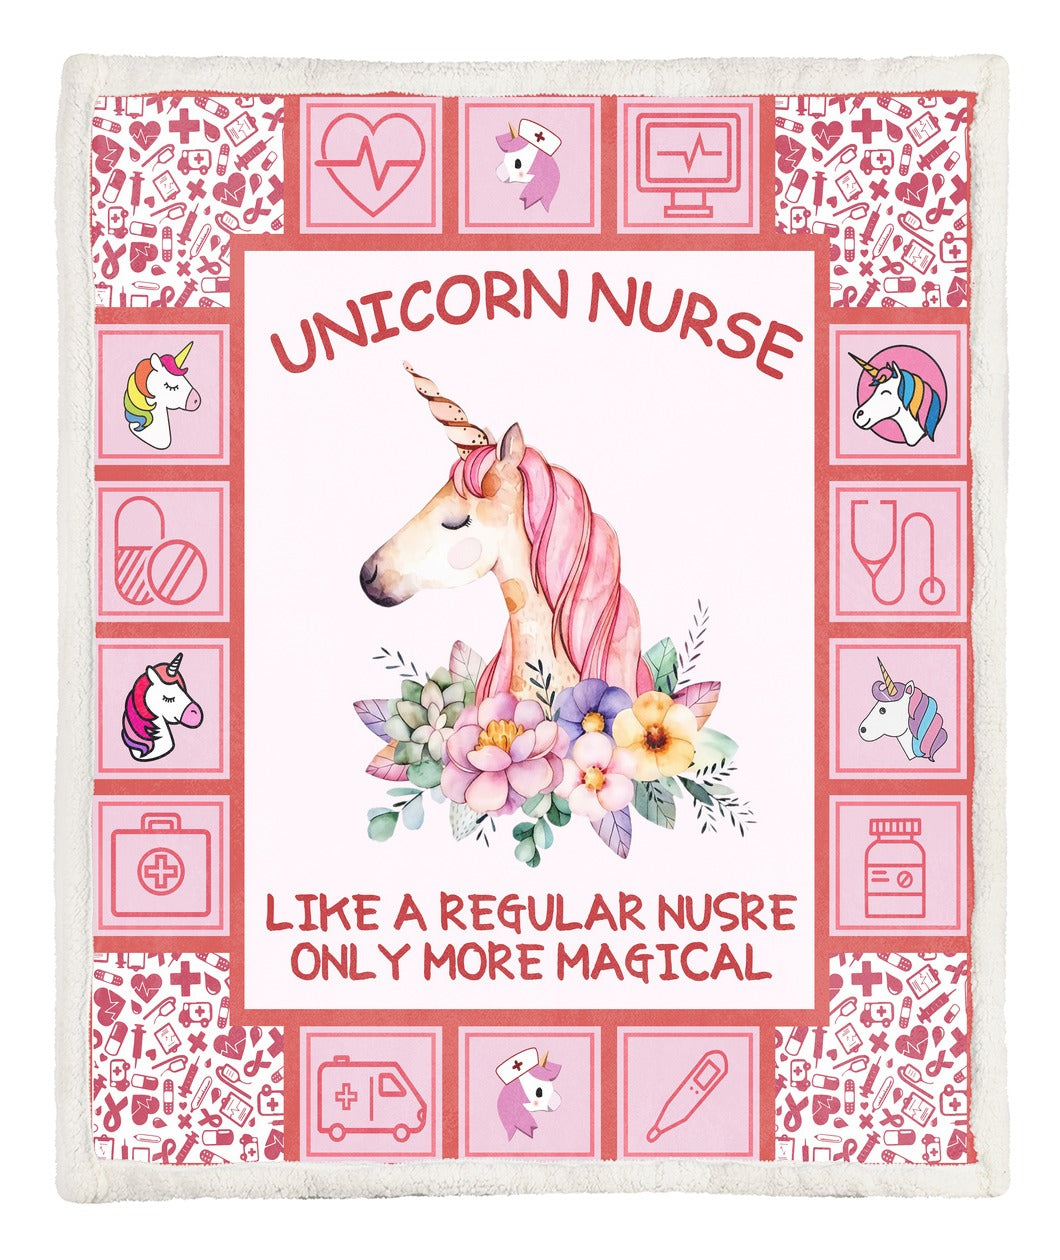 Unicorn Nurse Throw Blanket TABCCC19103953